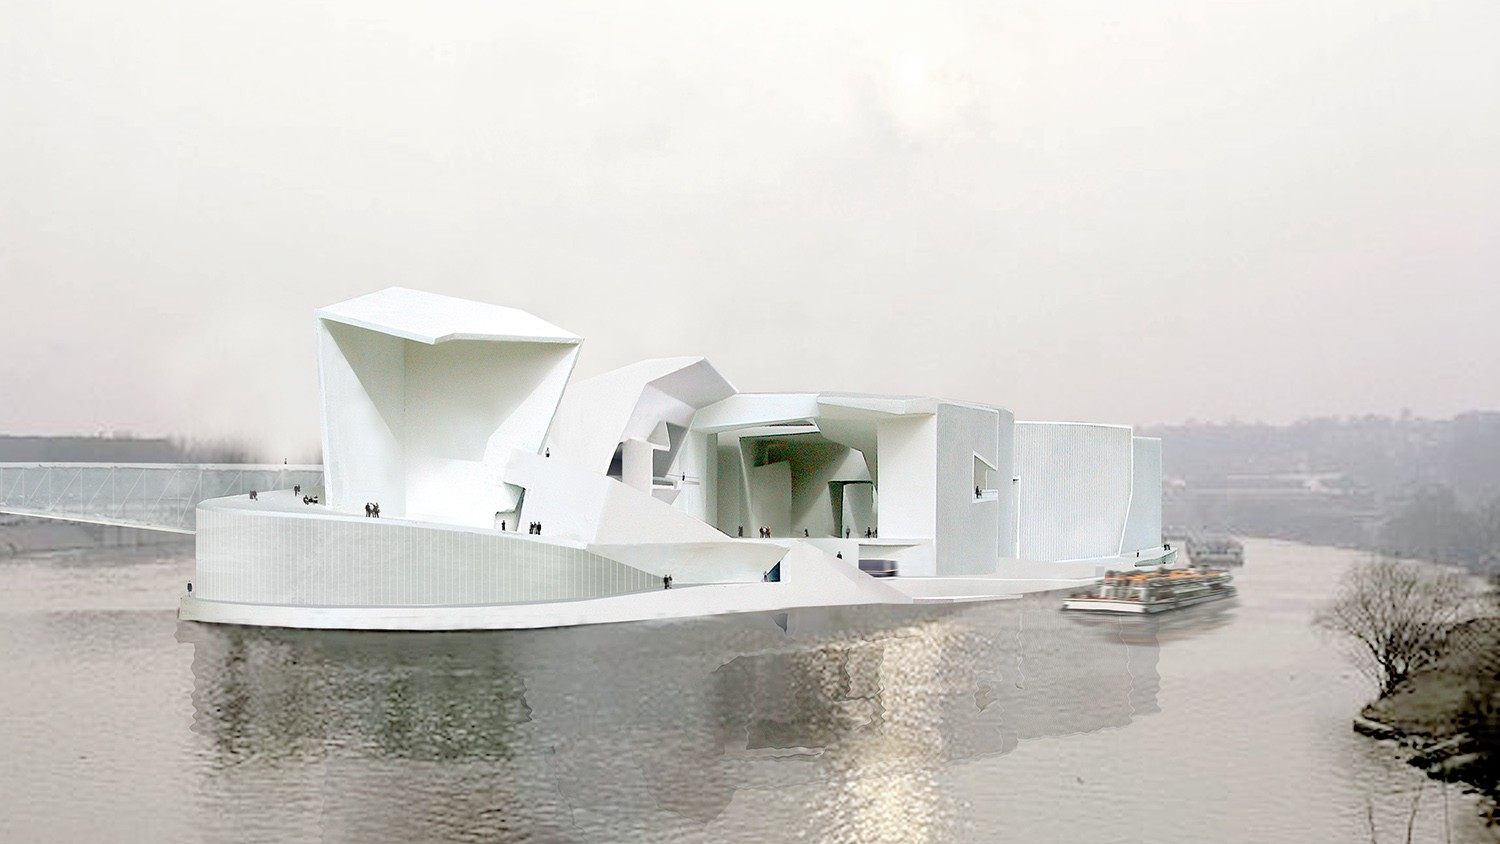 https://s3.us-east-2.amazonaws.com/steven-holl/uploads/projects/project-images/StevenHollArchitects_IleSeguin_postcardimage_WH.jpg